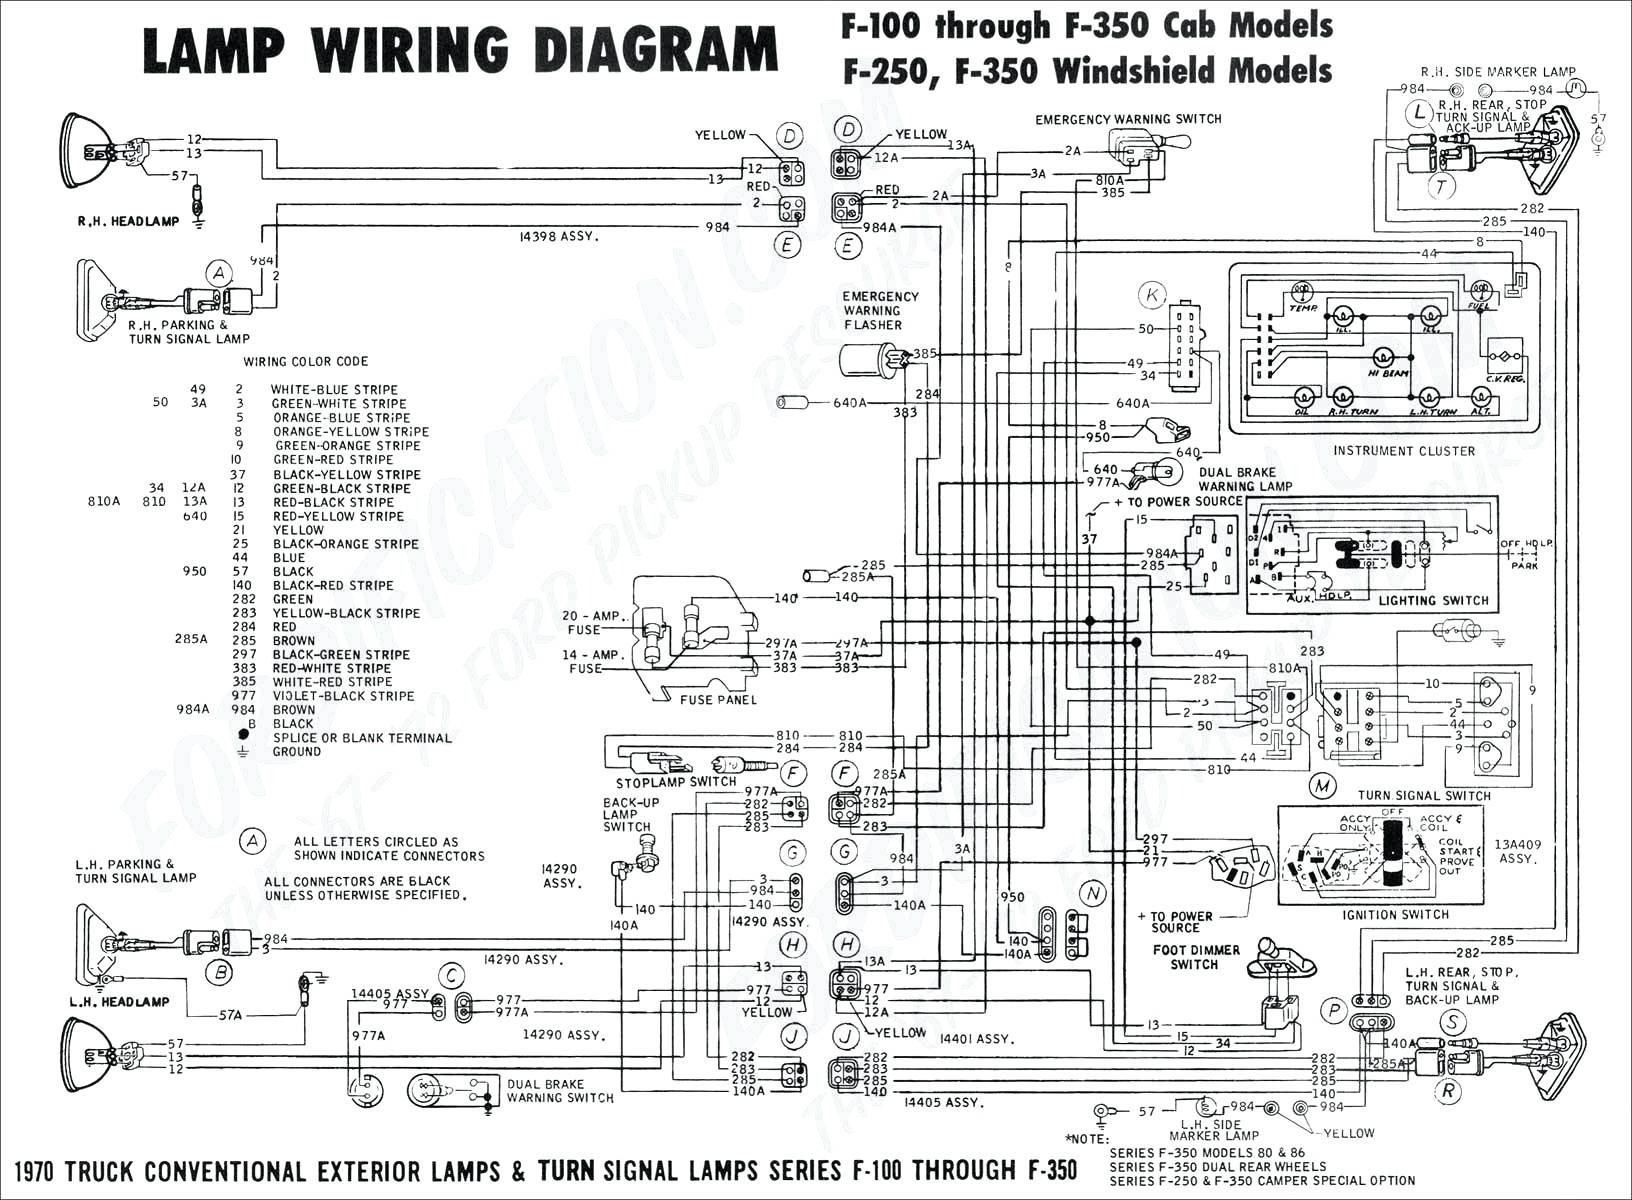 Ford Escape V6 Engine Diagram List Of Schematic Circuit 2003 3 0 2009 Electrical Wiring Diagrams Rh Wiringforall Today 2012